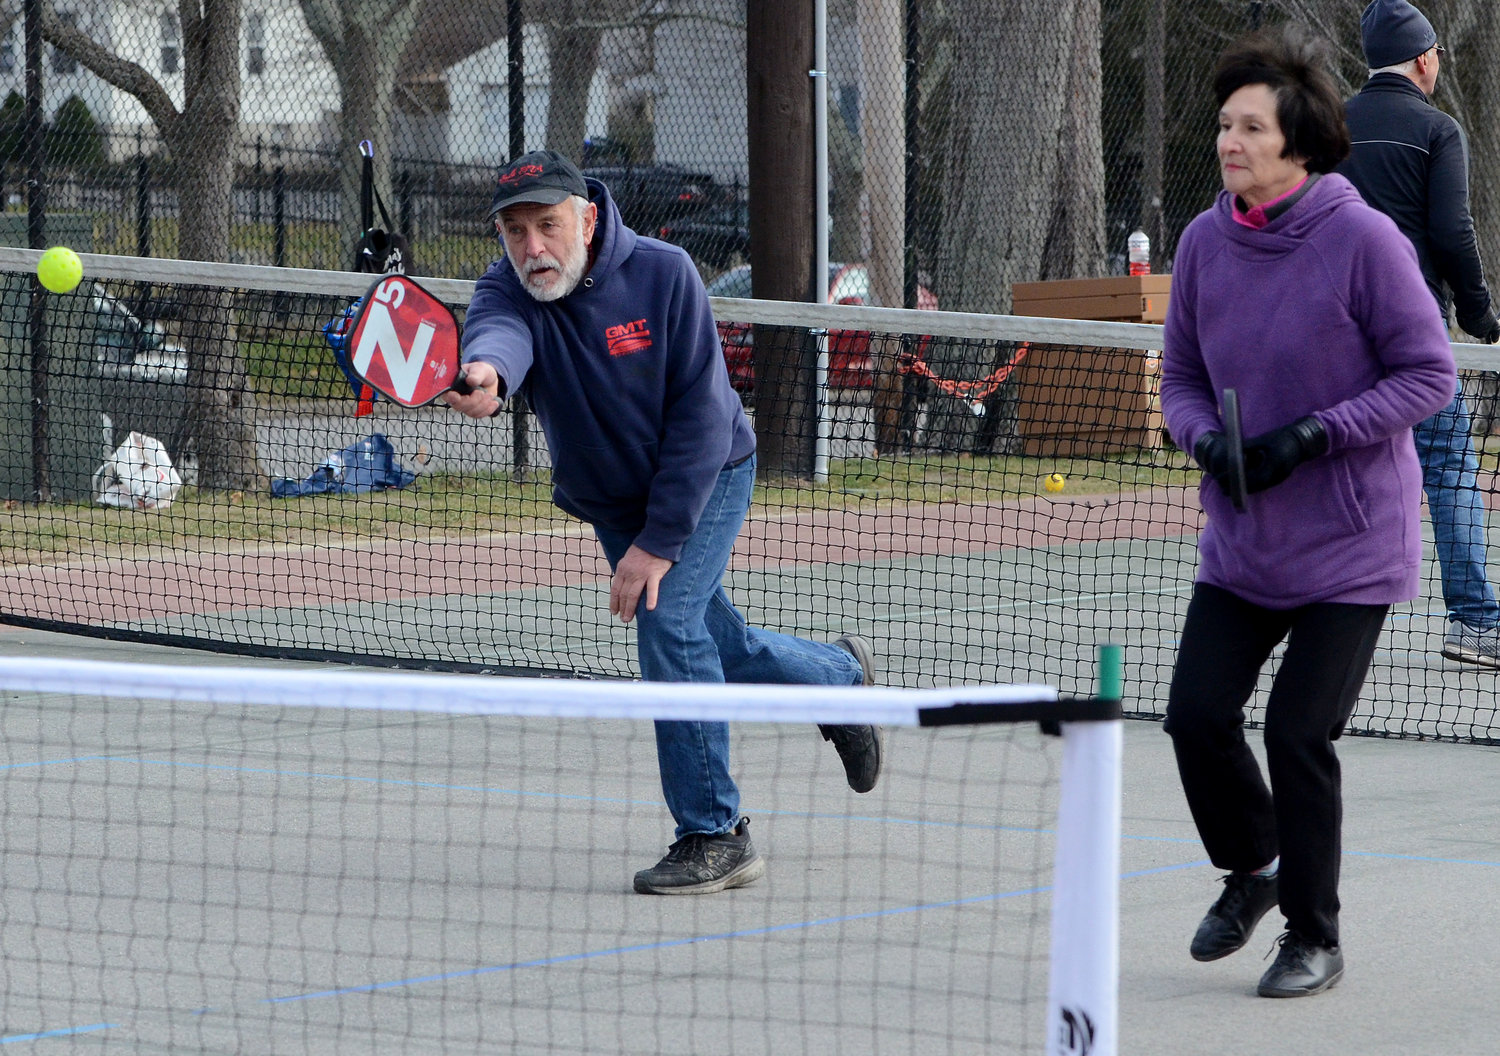 People play a game of pickle-ball in Bristol recently. Last week, the Barrington Park and Recreation Commission approved a motion to paint pickle-ball court lines on the asphalt surface at Chianese Park.